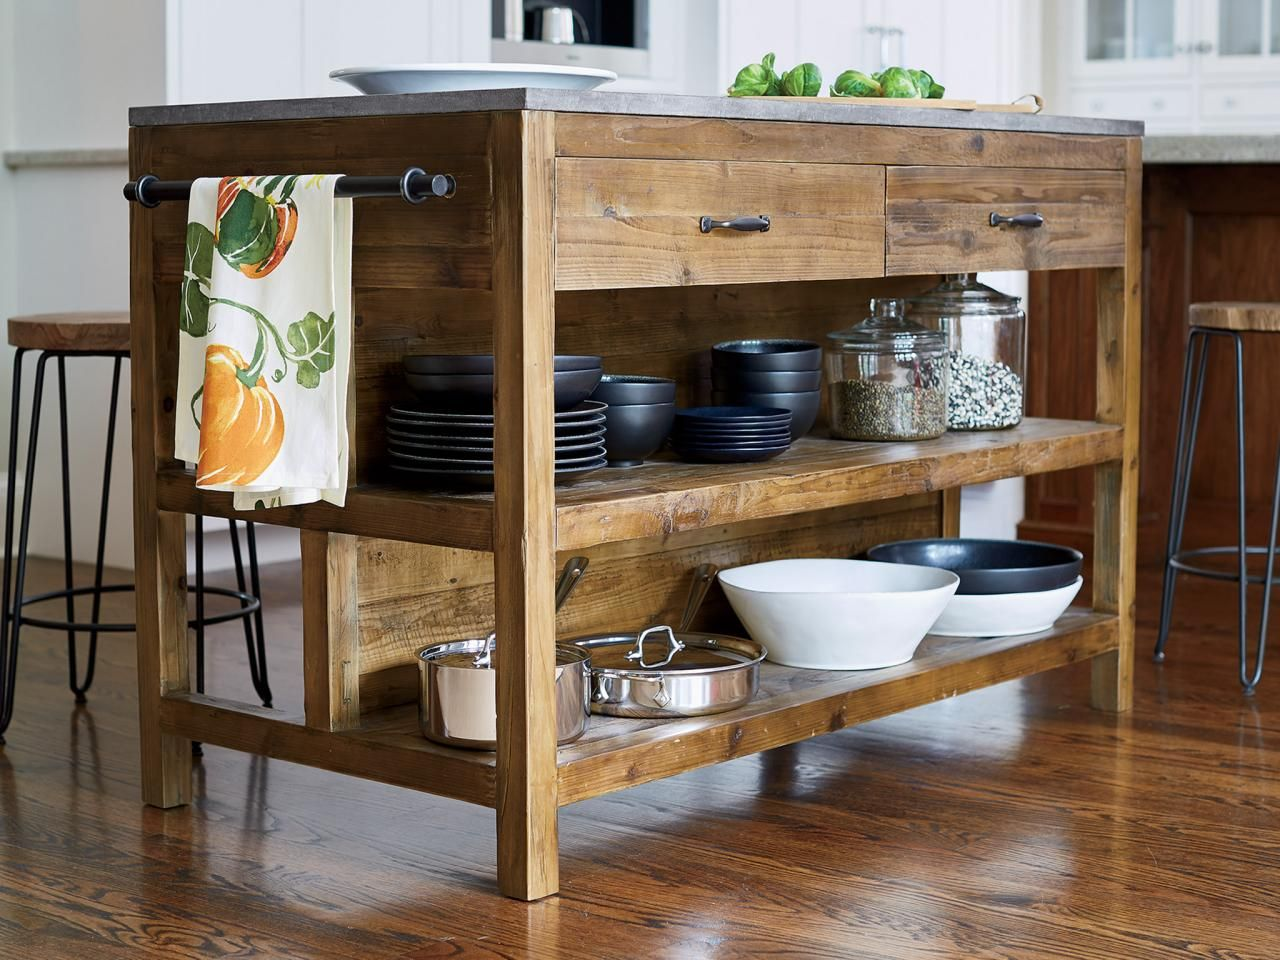 Browse photos of creative kitchen island designs at HGTV.com ...